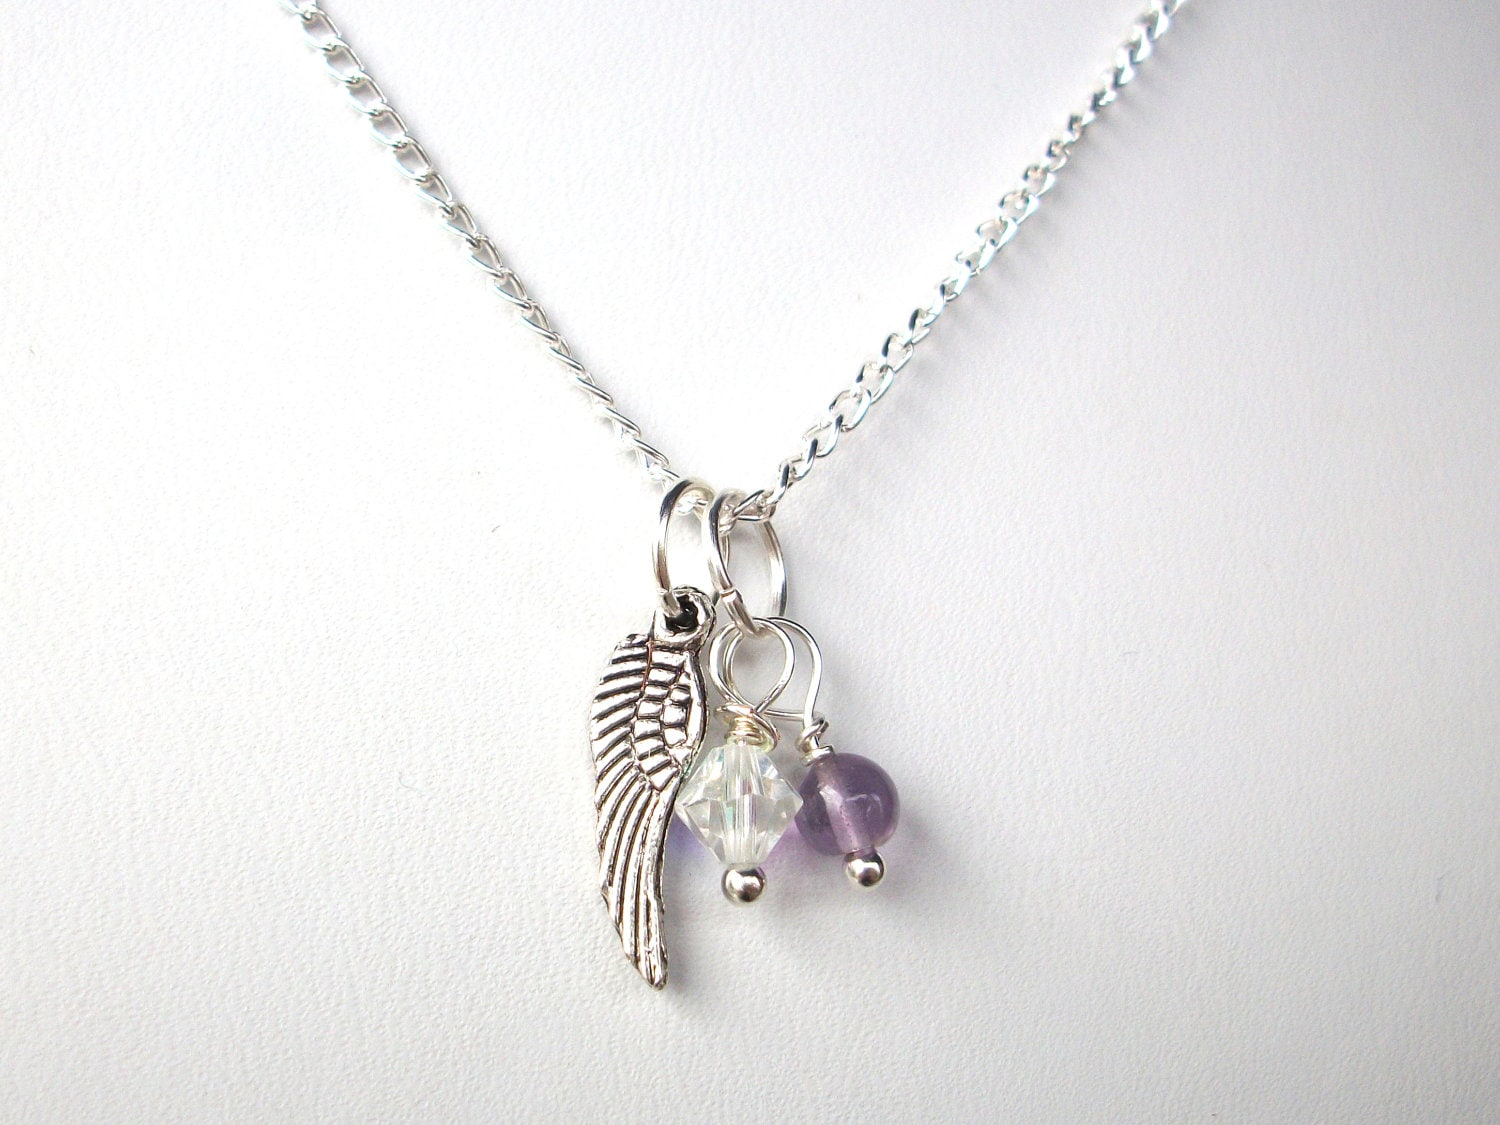 Miscarriage Necklace Two Birthstones And Silver Angel Wing On